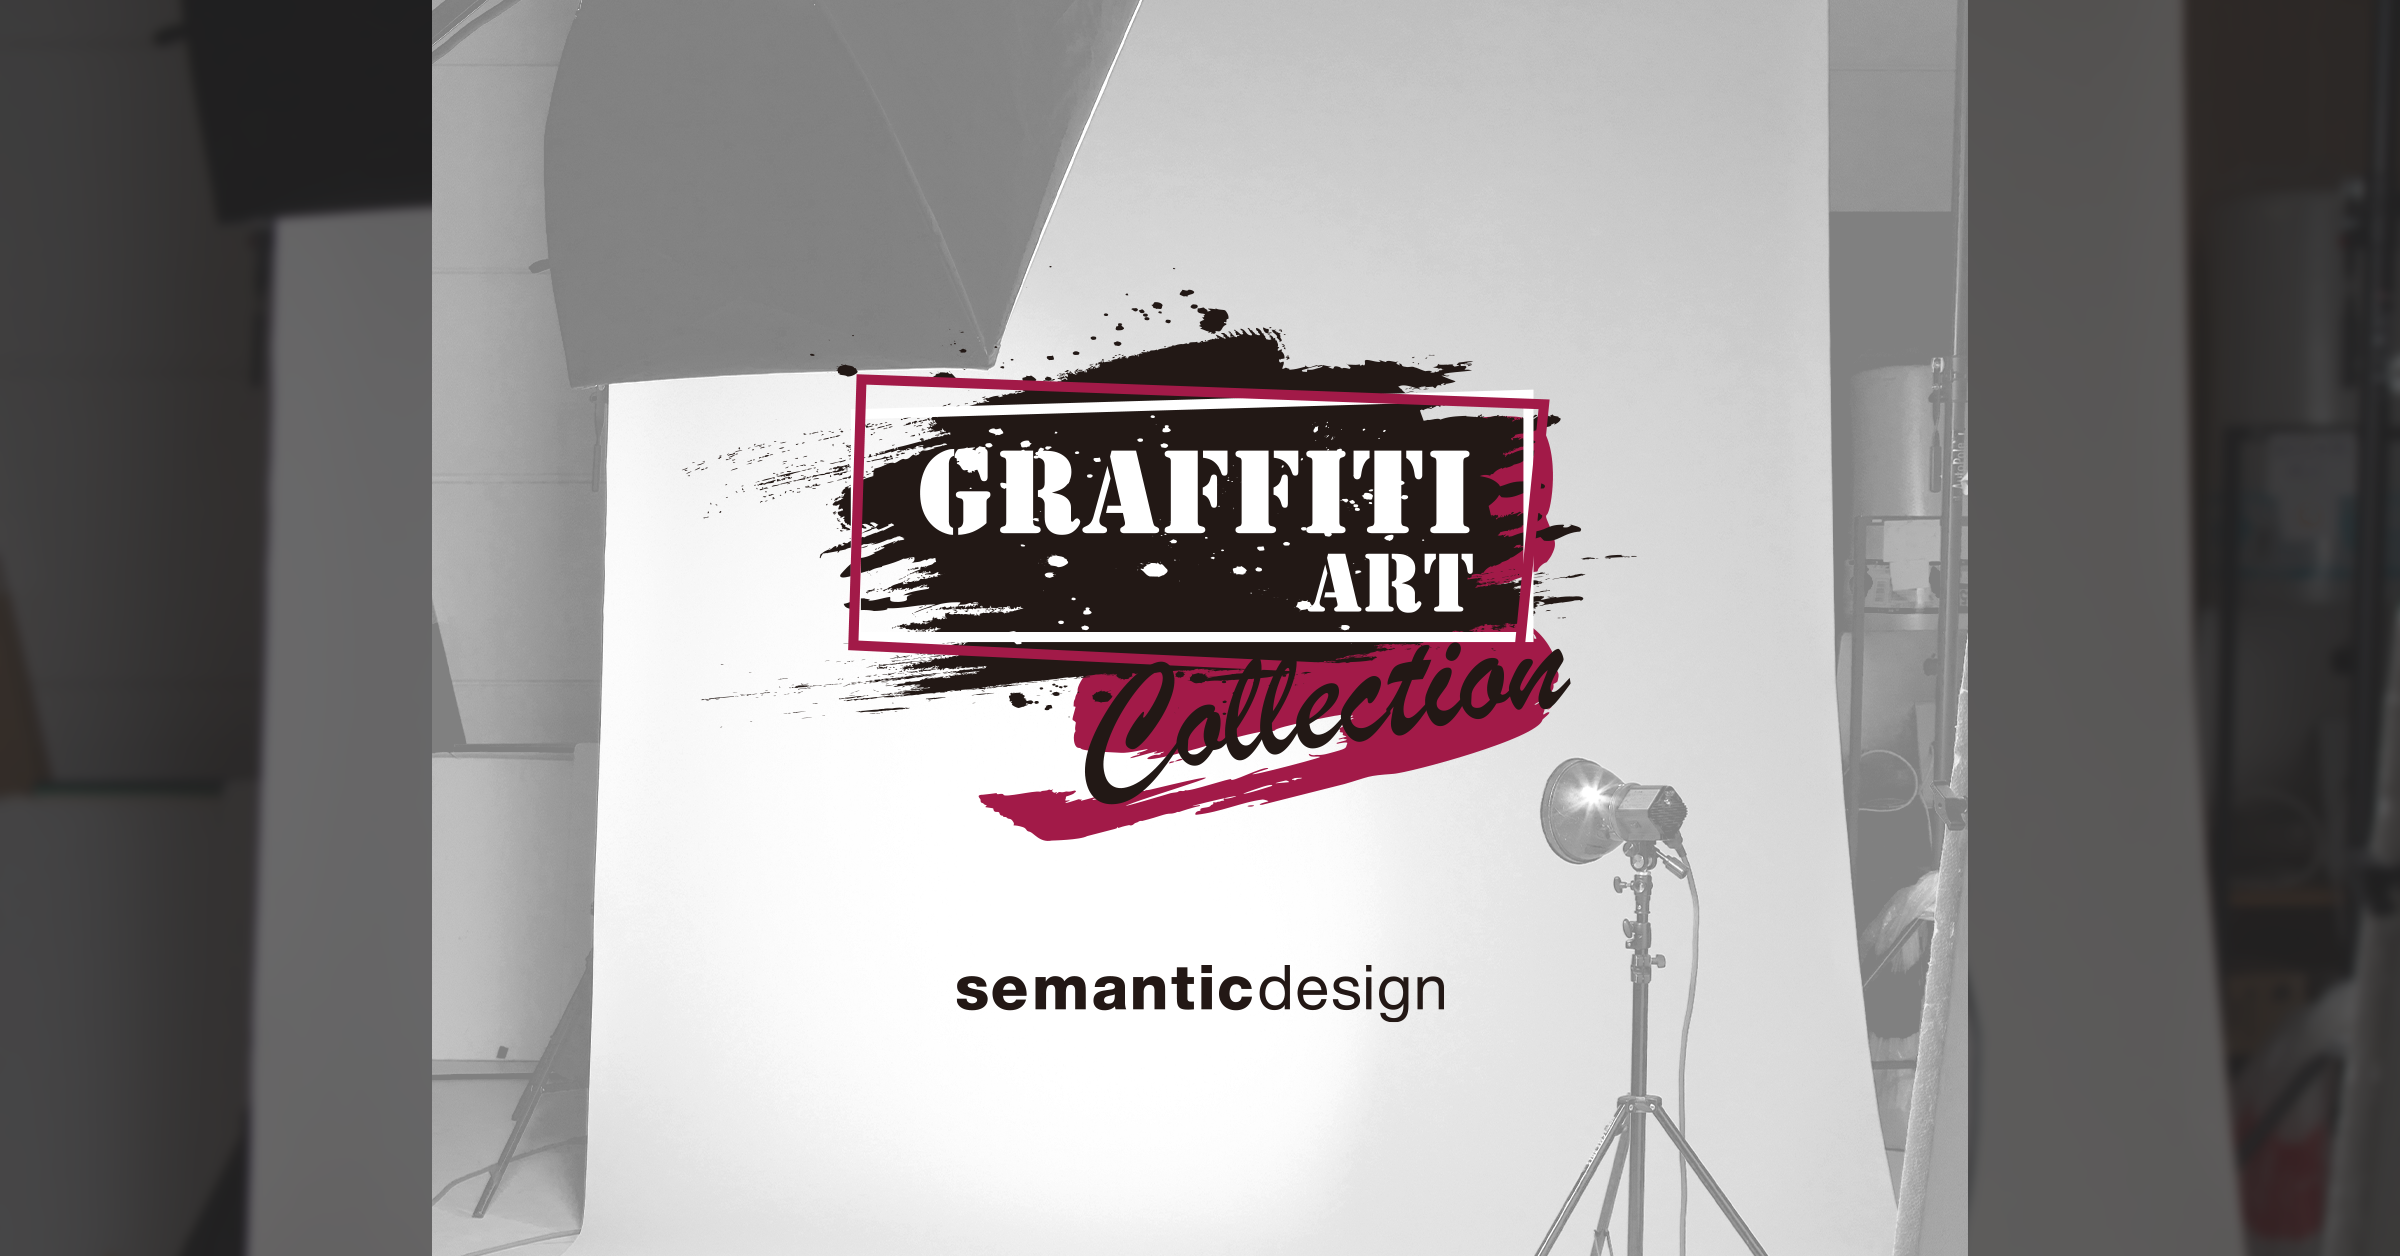 GRAFFITI ART COLLECTION